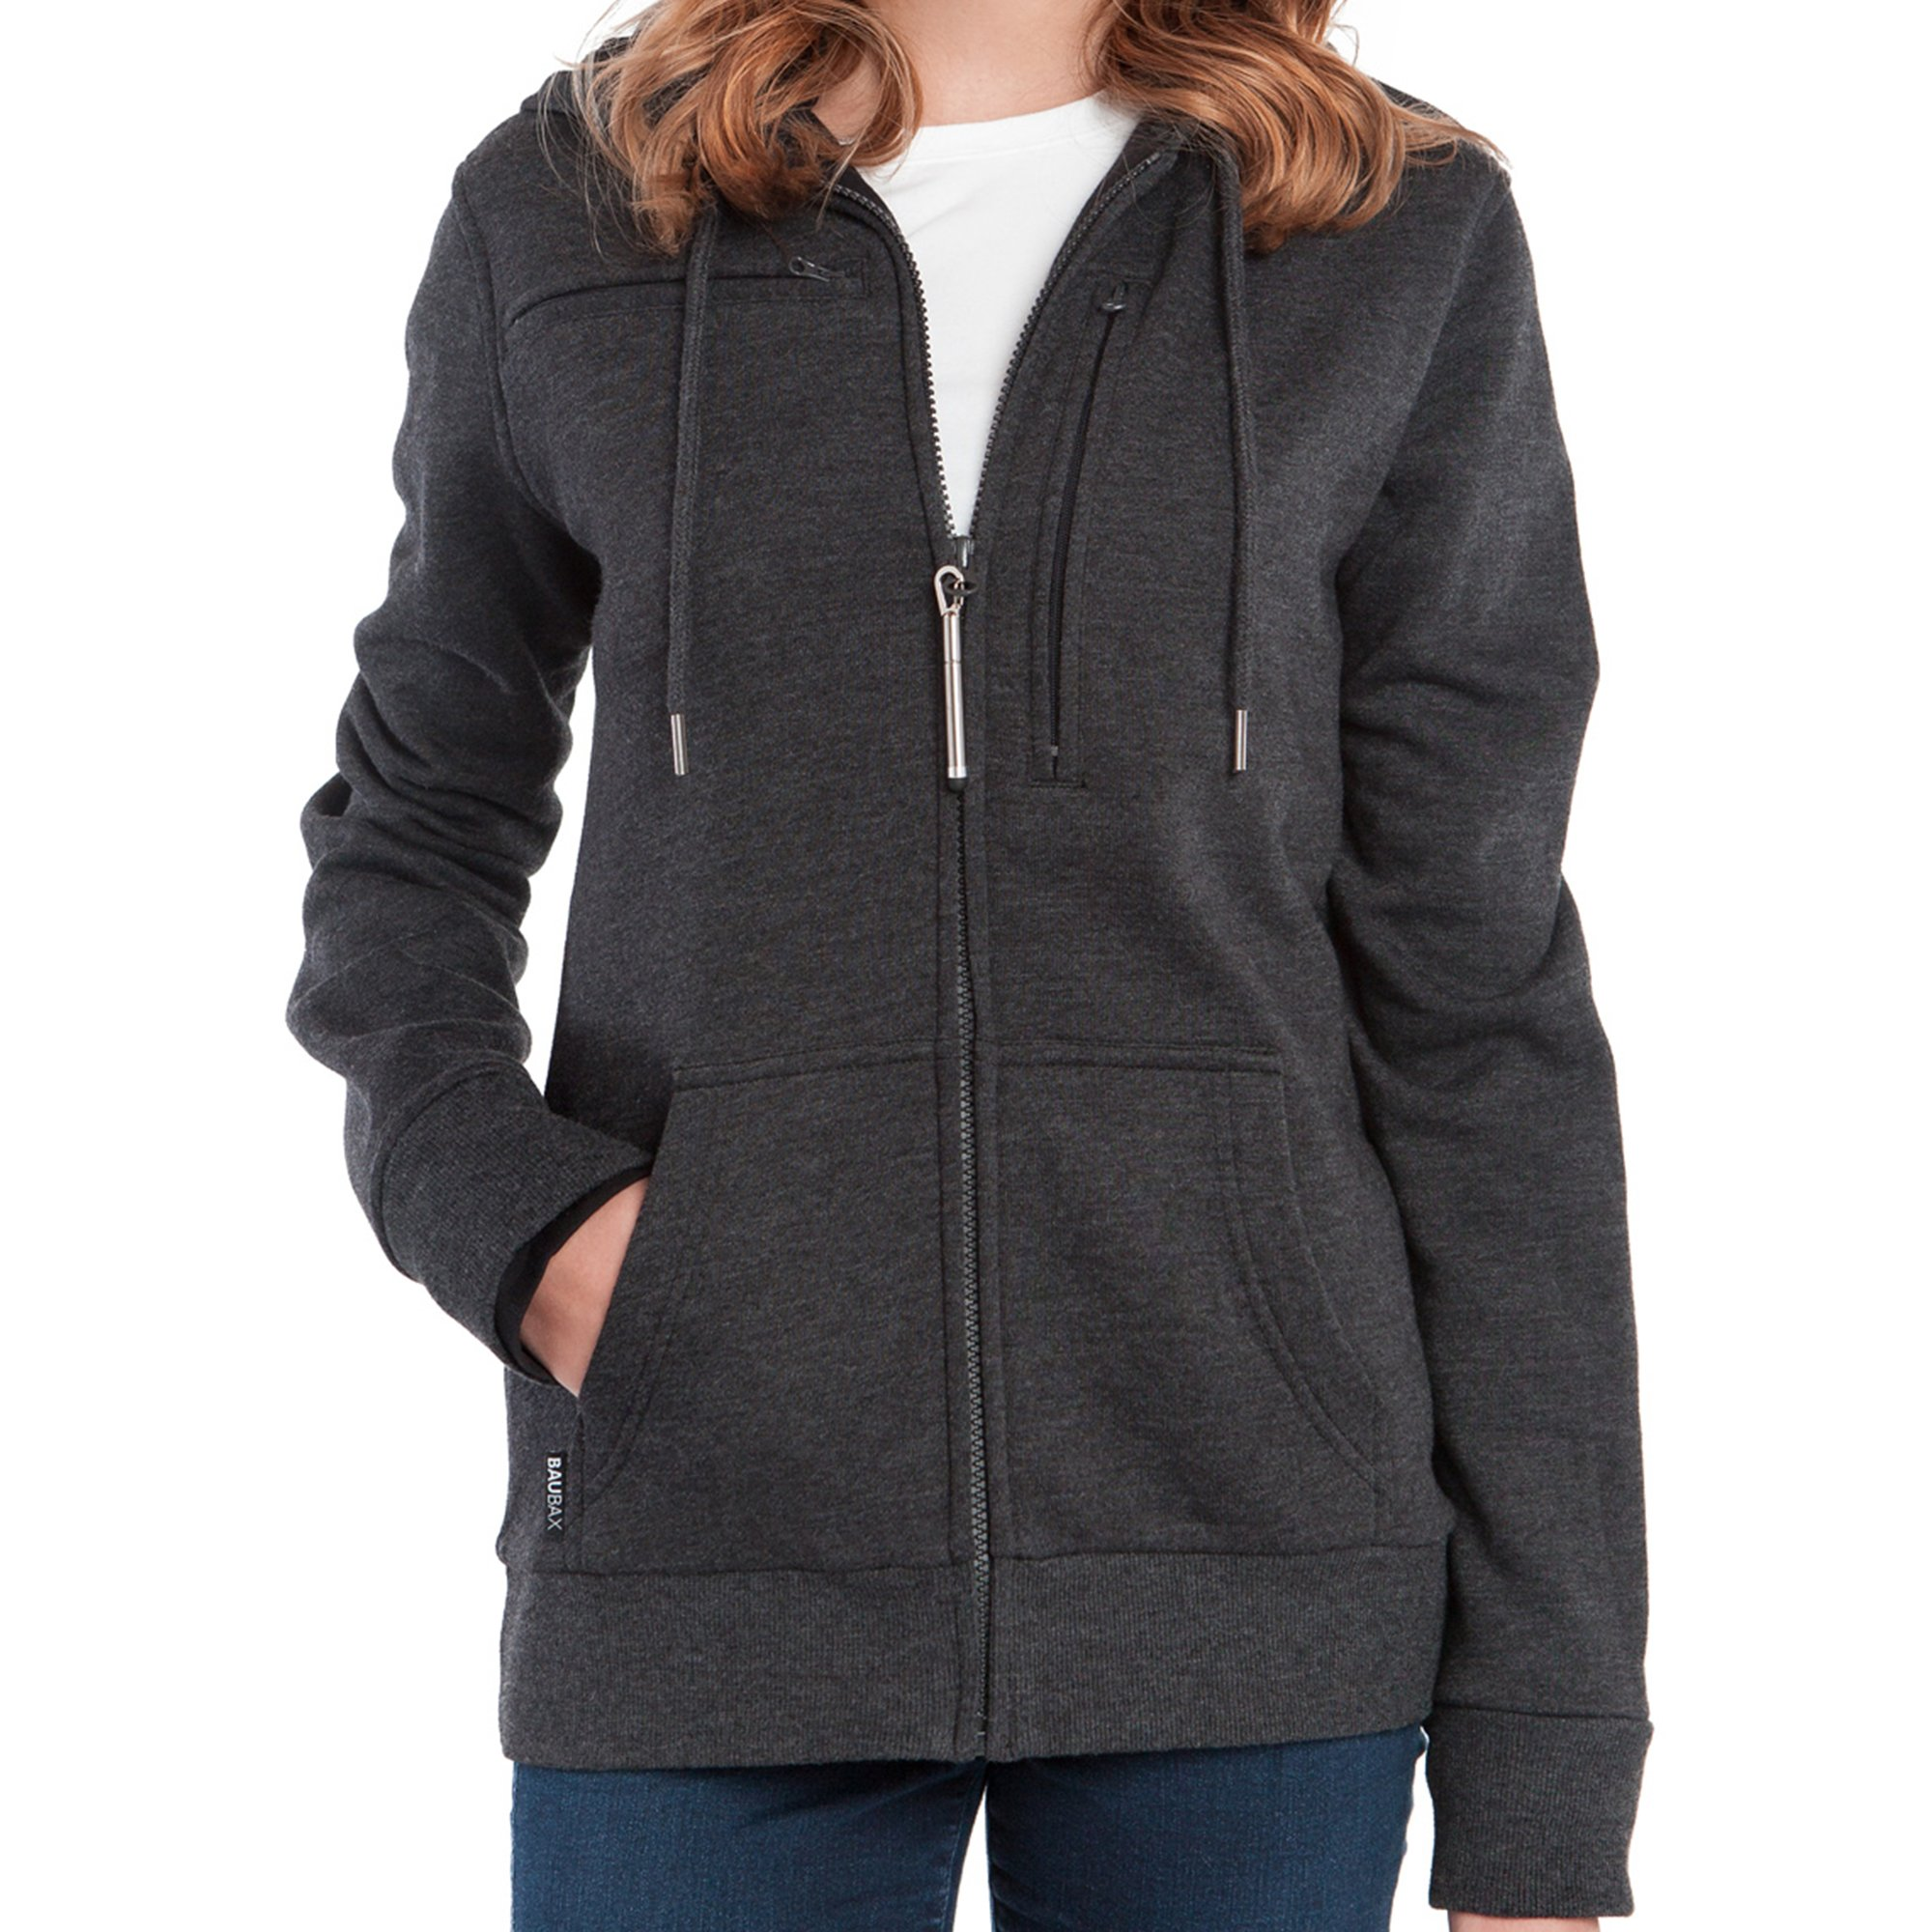 Baubax Travel Jacket - Sweatshirt - Female - Charcoal - Medium by Baubax